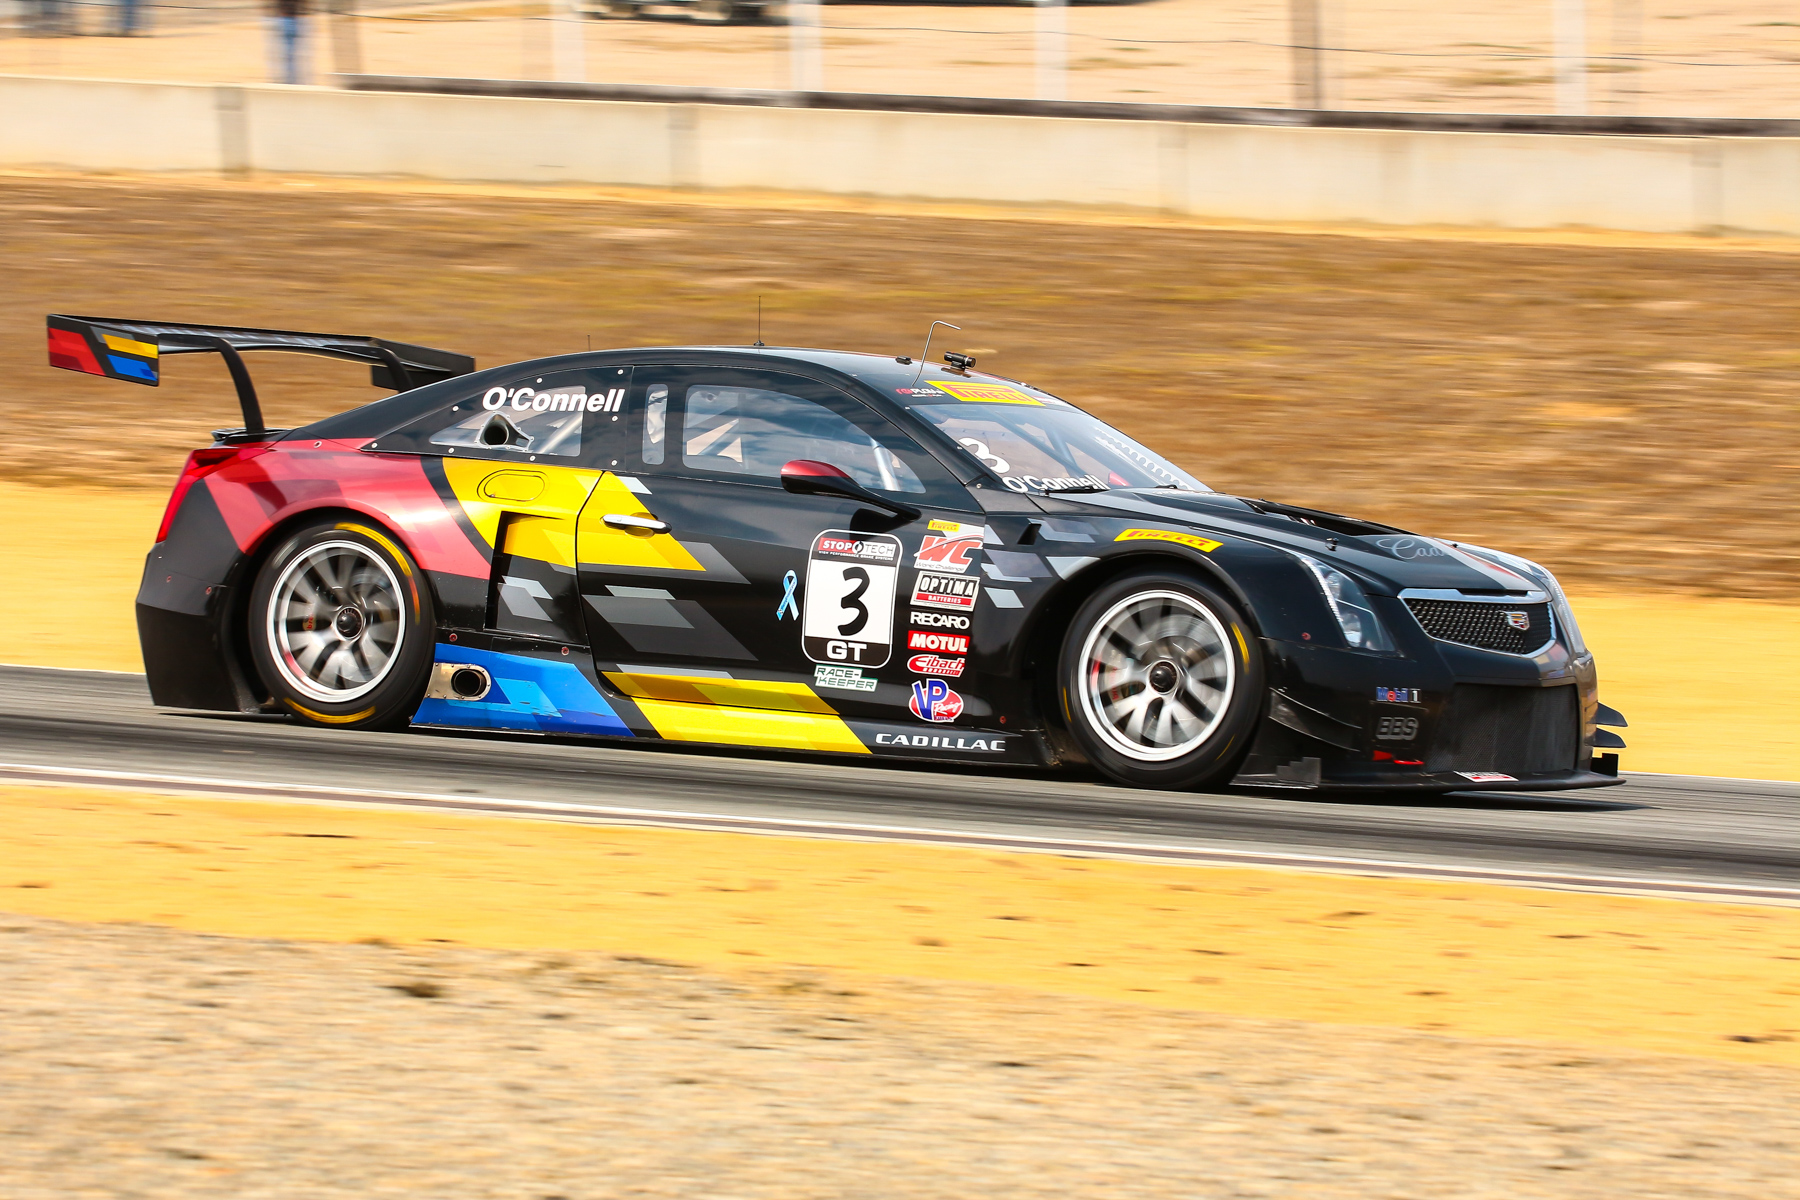 Cadillac driven by Johnny O'Connell, four time Pirelli World Challenge champion.